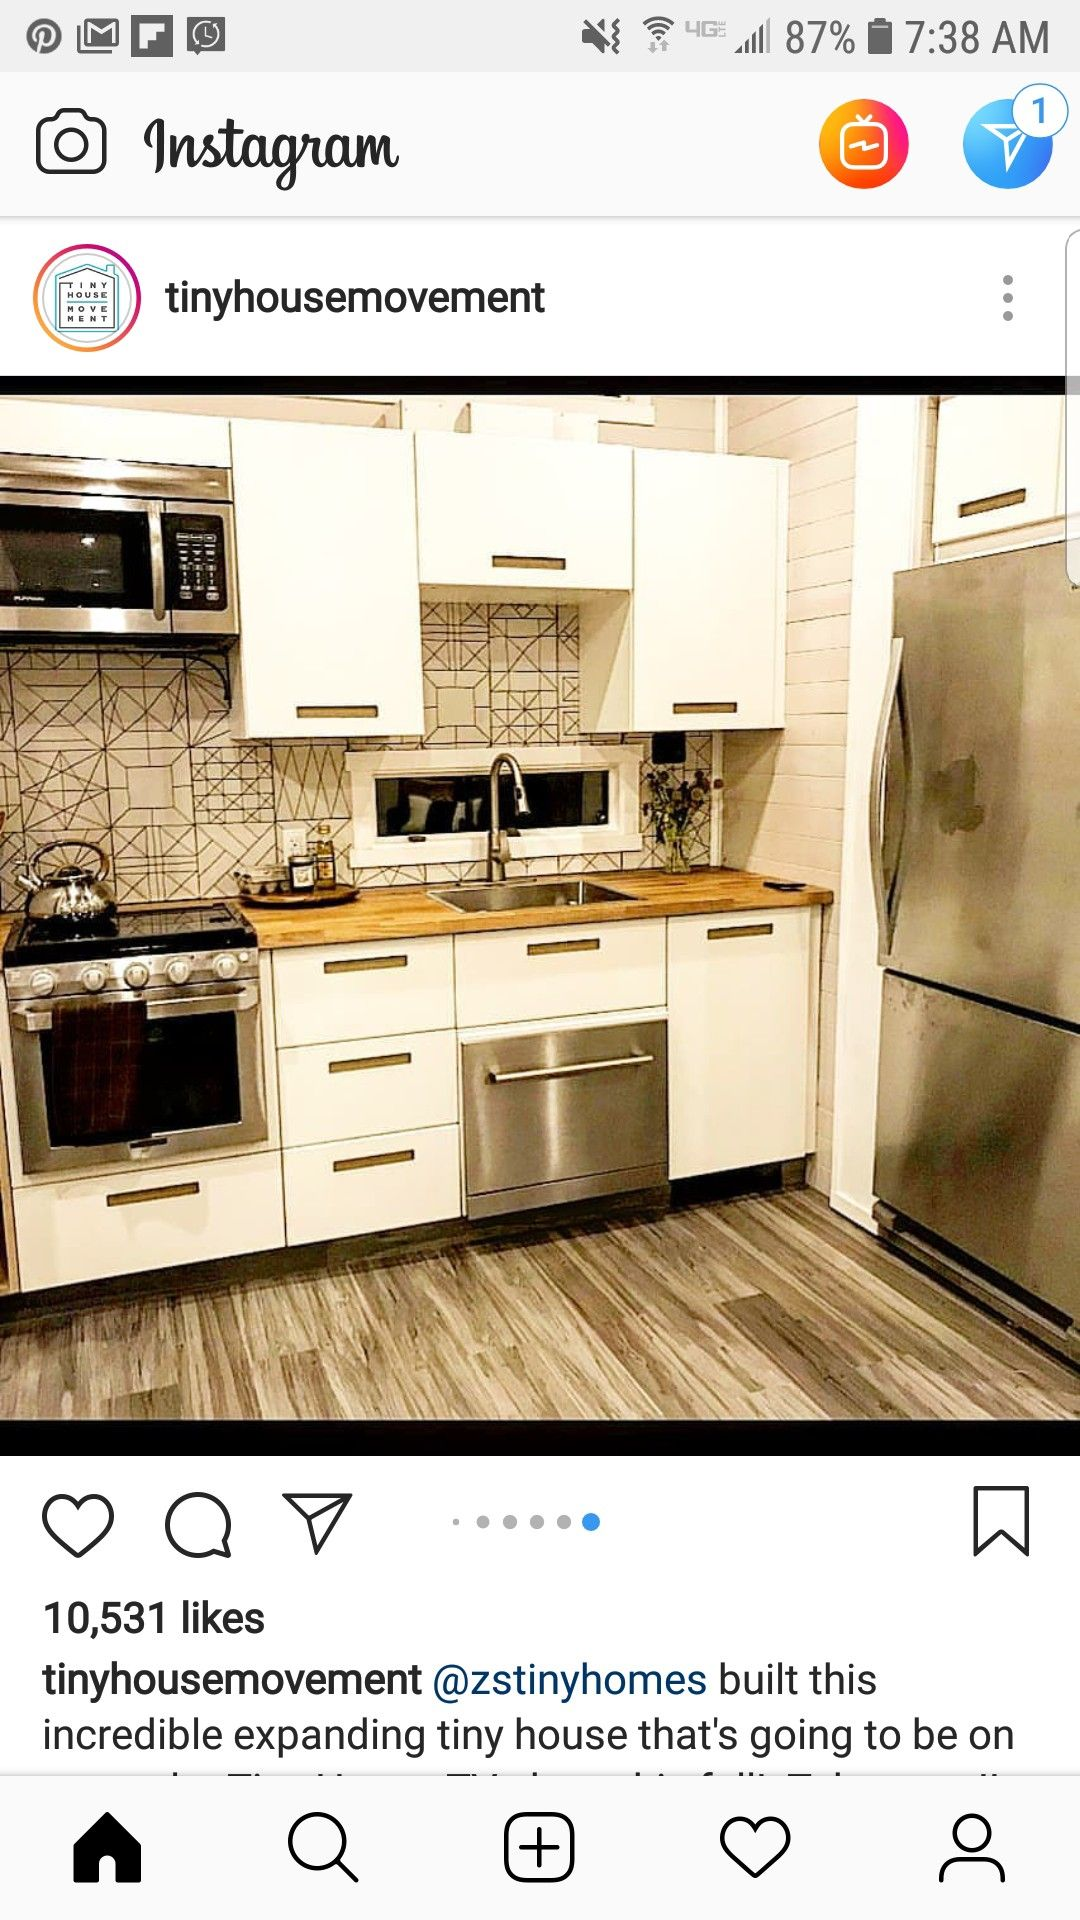 When A Washington Homeowner Found Her Kitchen Flooded By A Dishwasher She Didn T Panic Instead She Renovated Her Kitch Kitchen Remodel Kitchen Remodel Photos